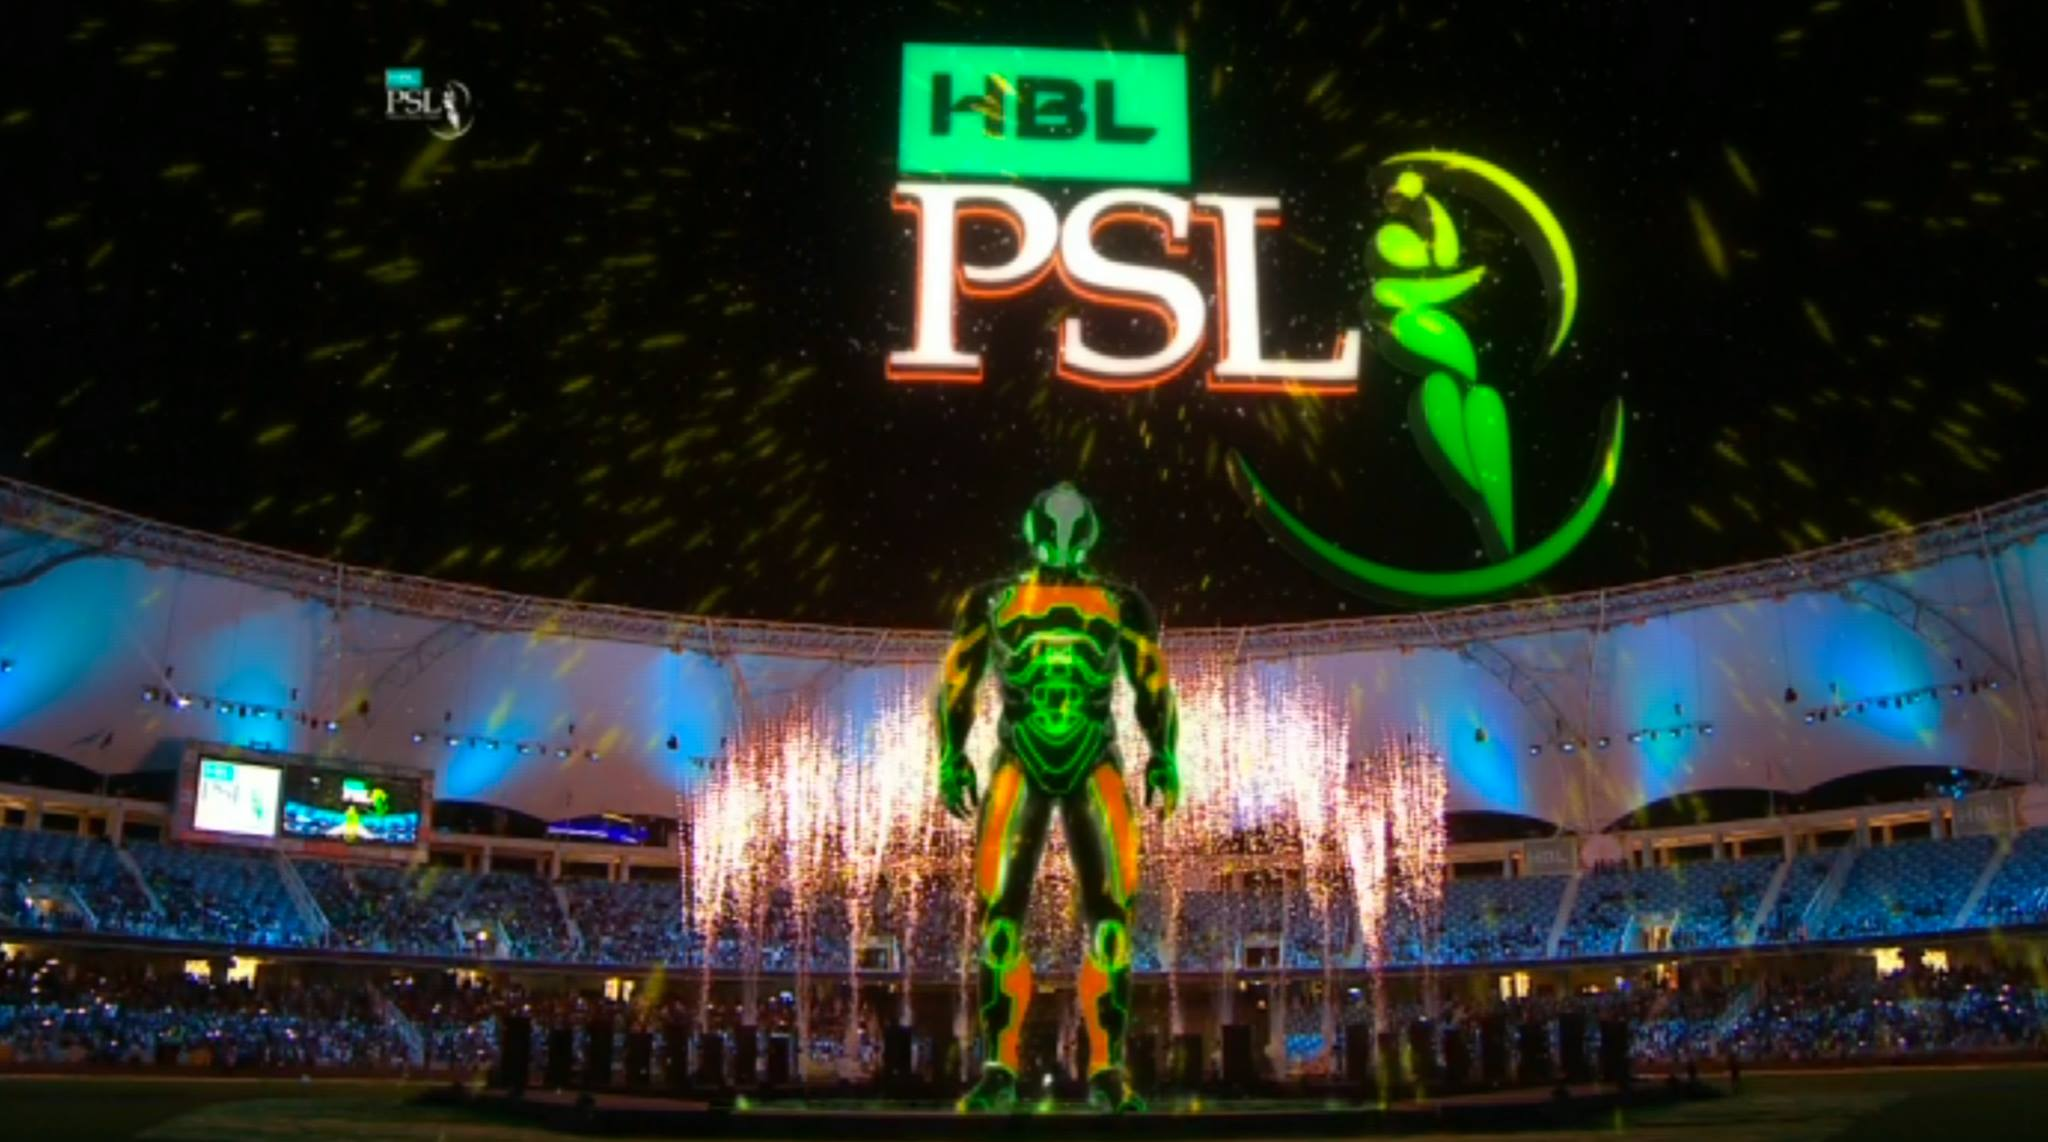 The fourth edition of Pakistan Super League has started a regular start today, in which the madness groups and other artists including Fawad Khan performed, Cricket News